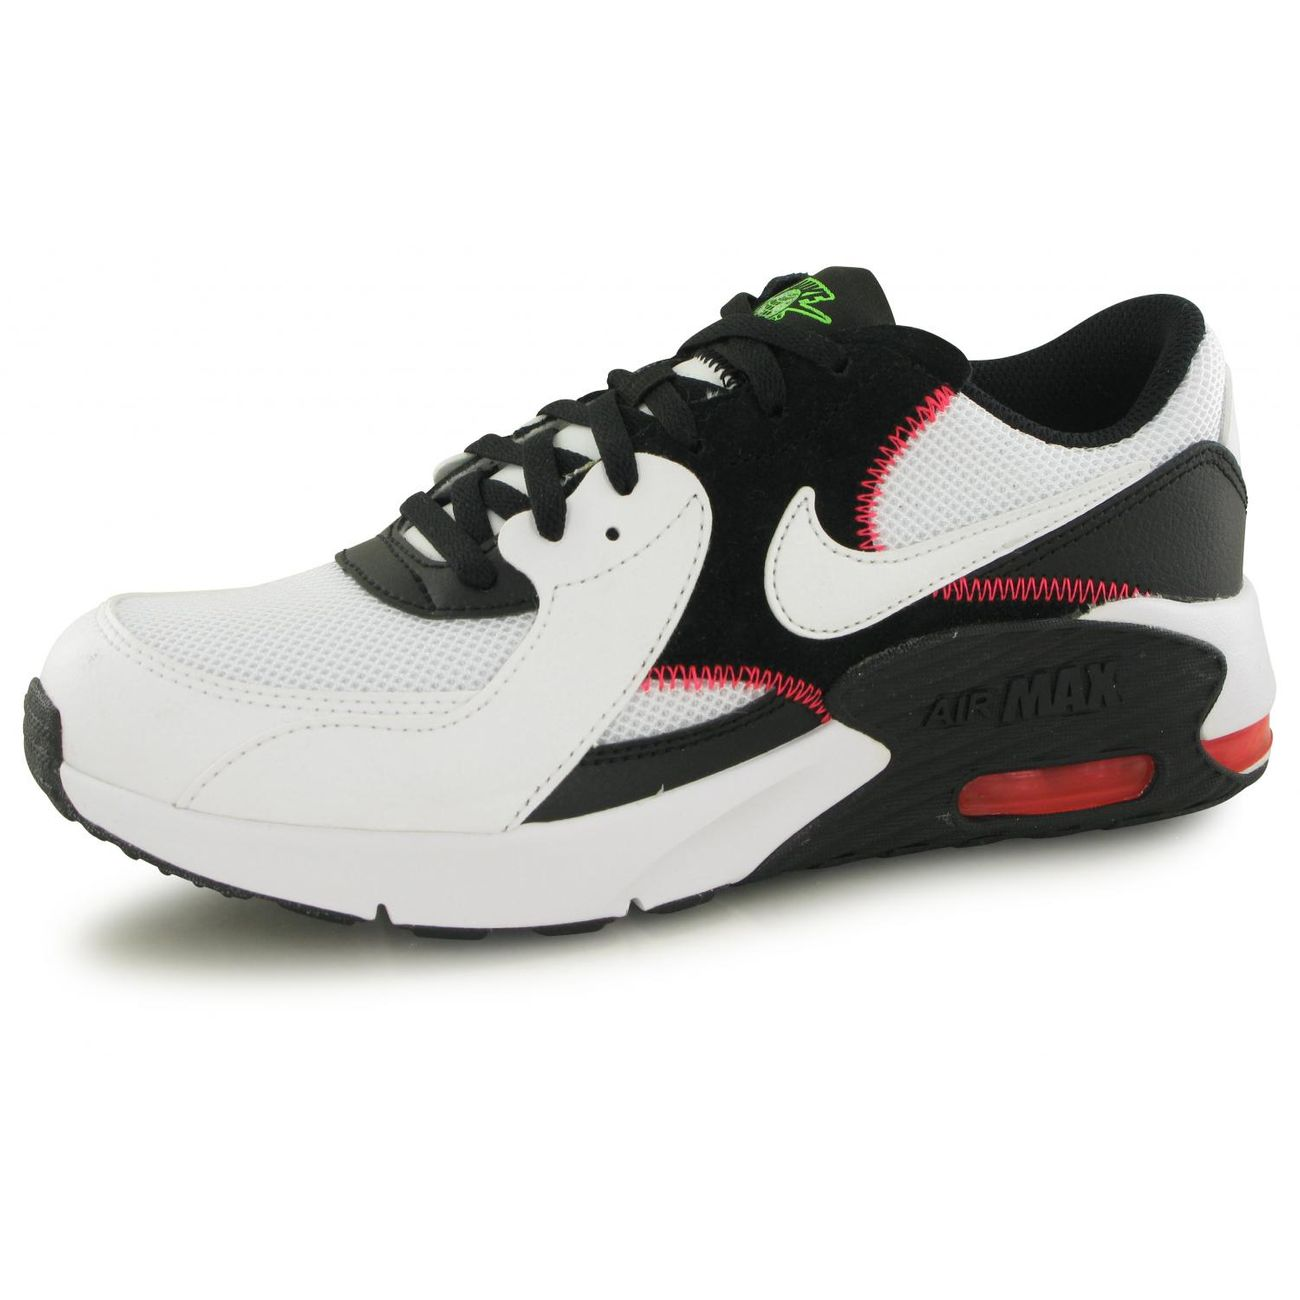 Baskets Air Max Excee – Achat pas cher - GO Sport